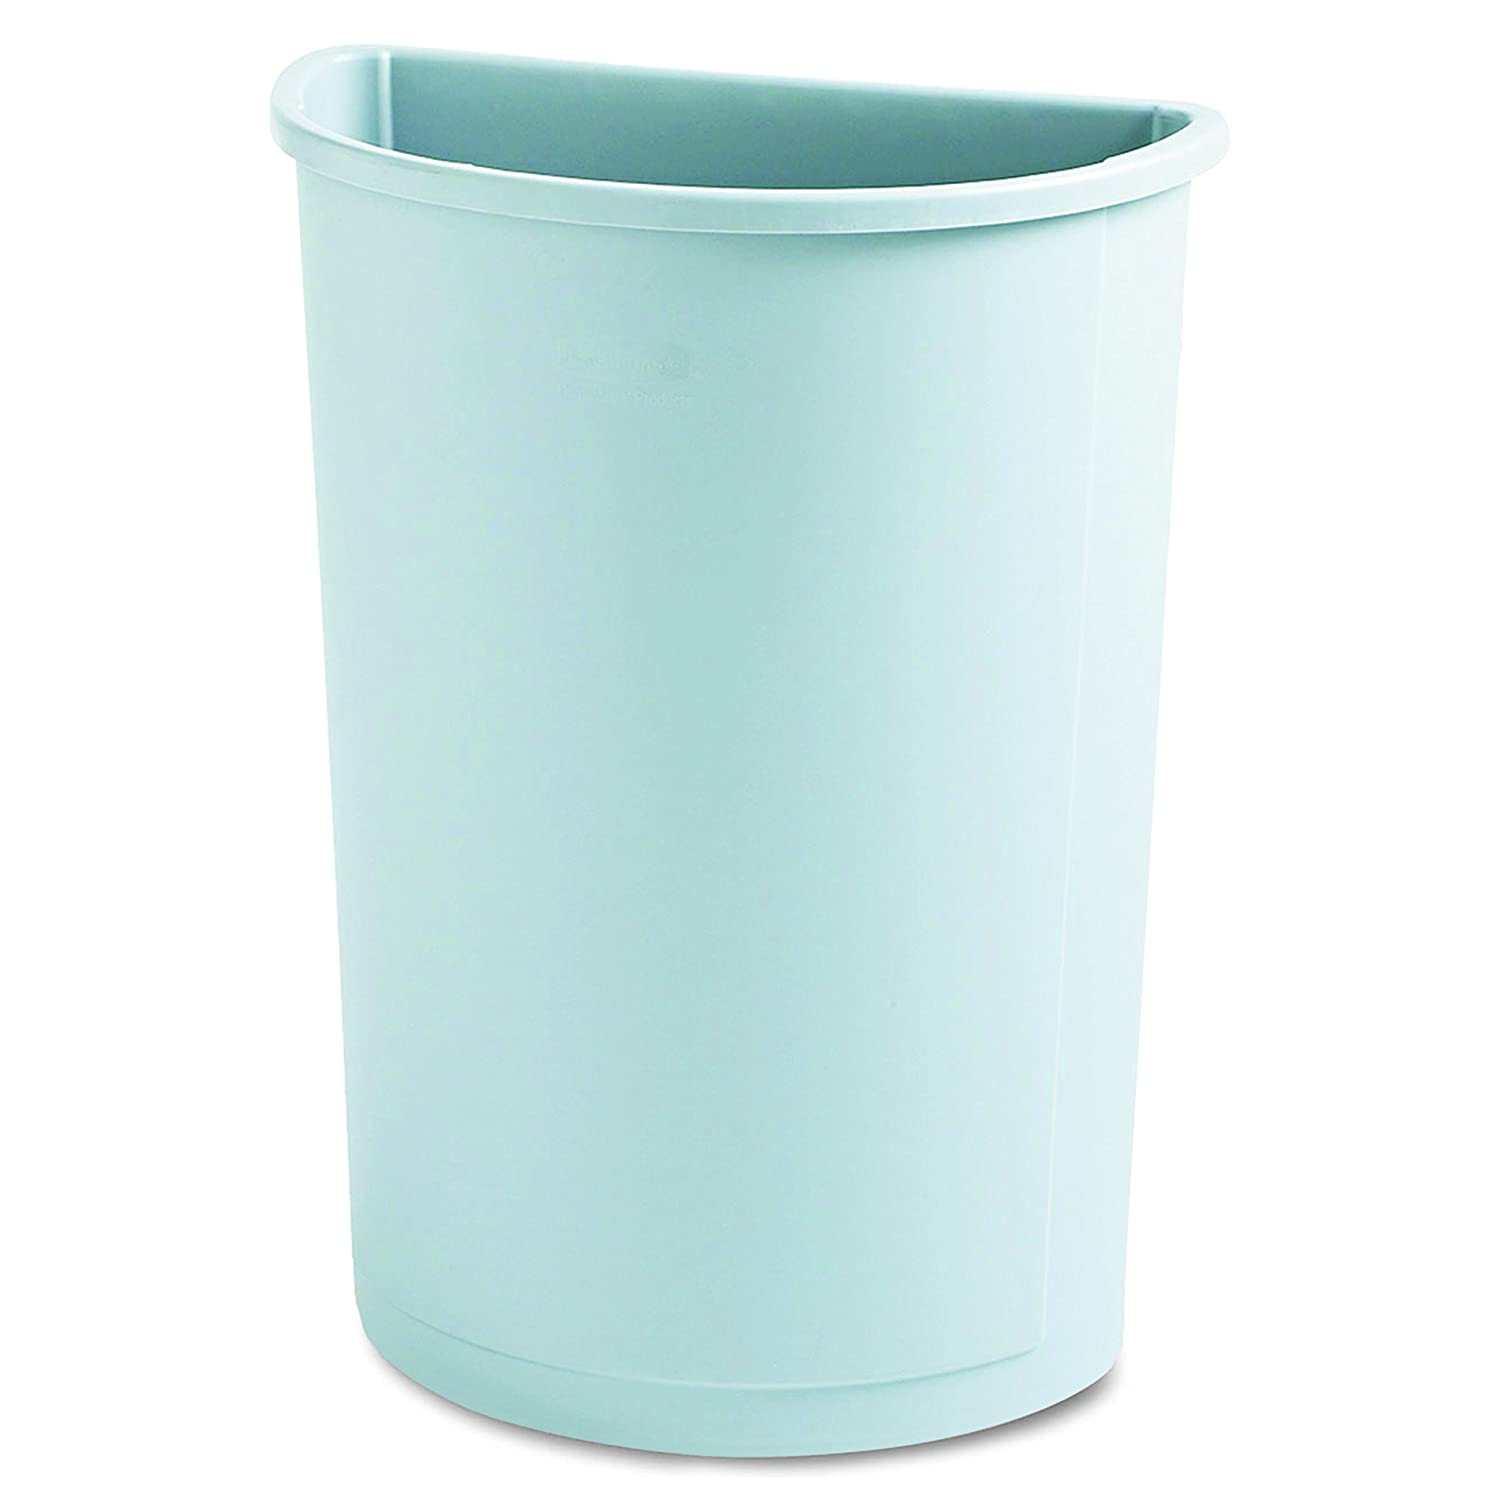 Rubbermaid Commercial 352000GY Untouchable Waste Container, Half-Round, Plastic, 21gal, Gray